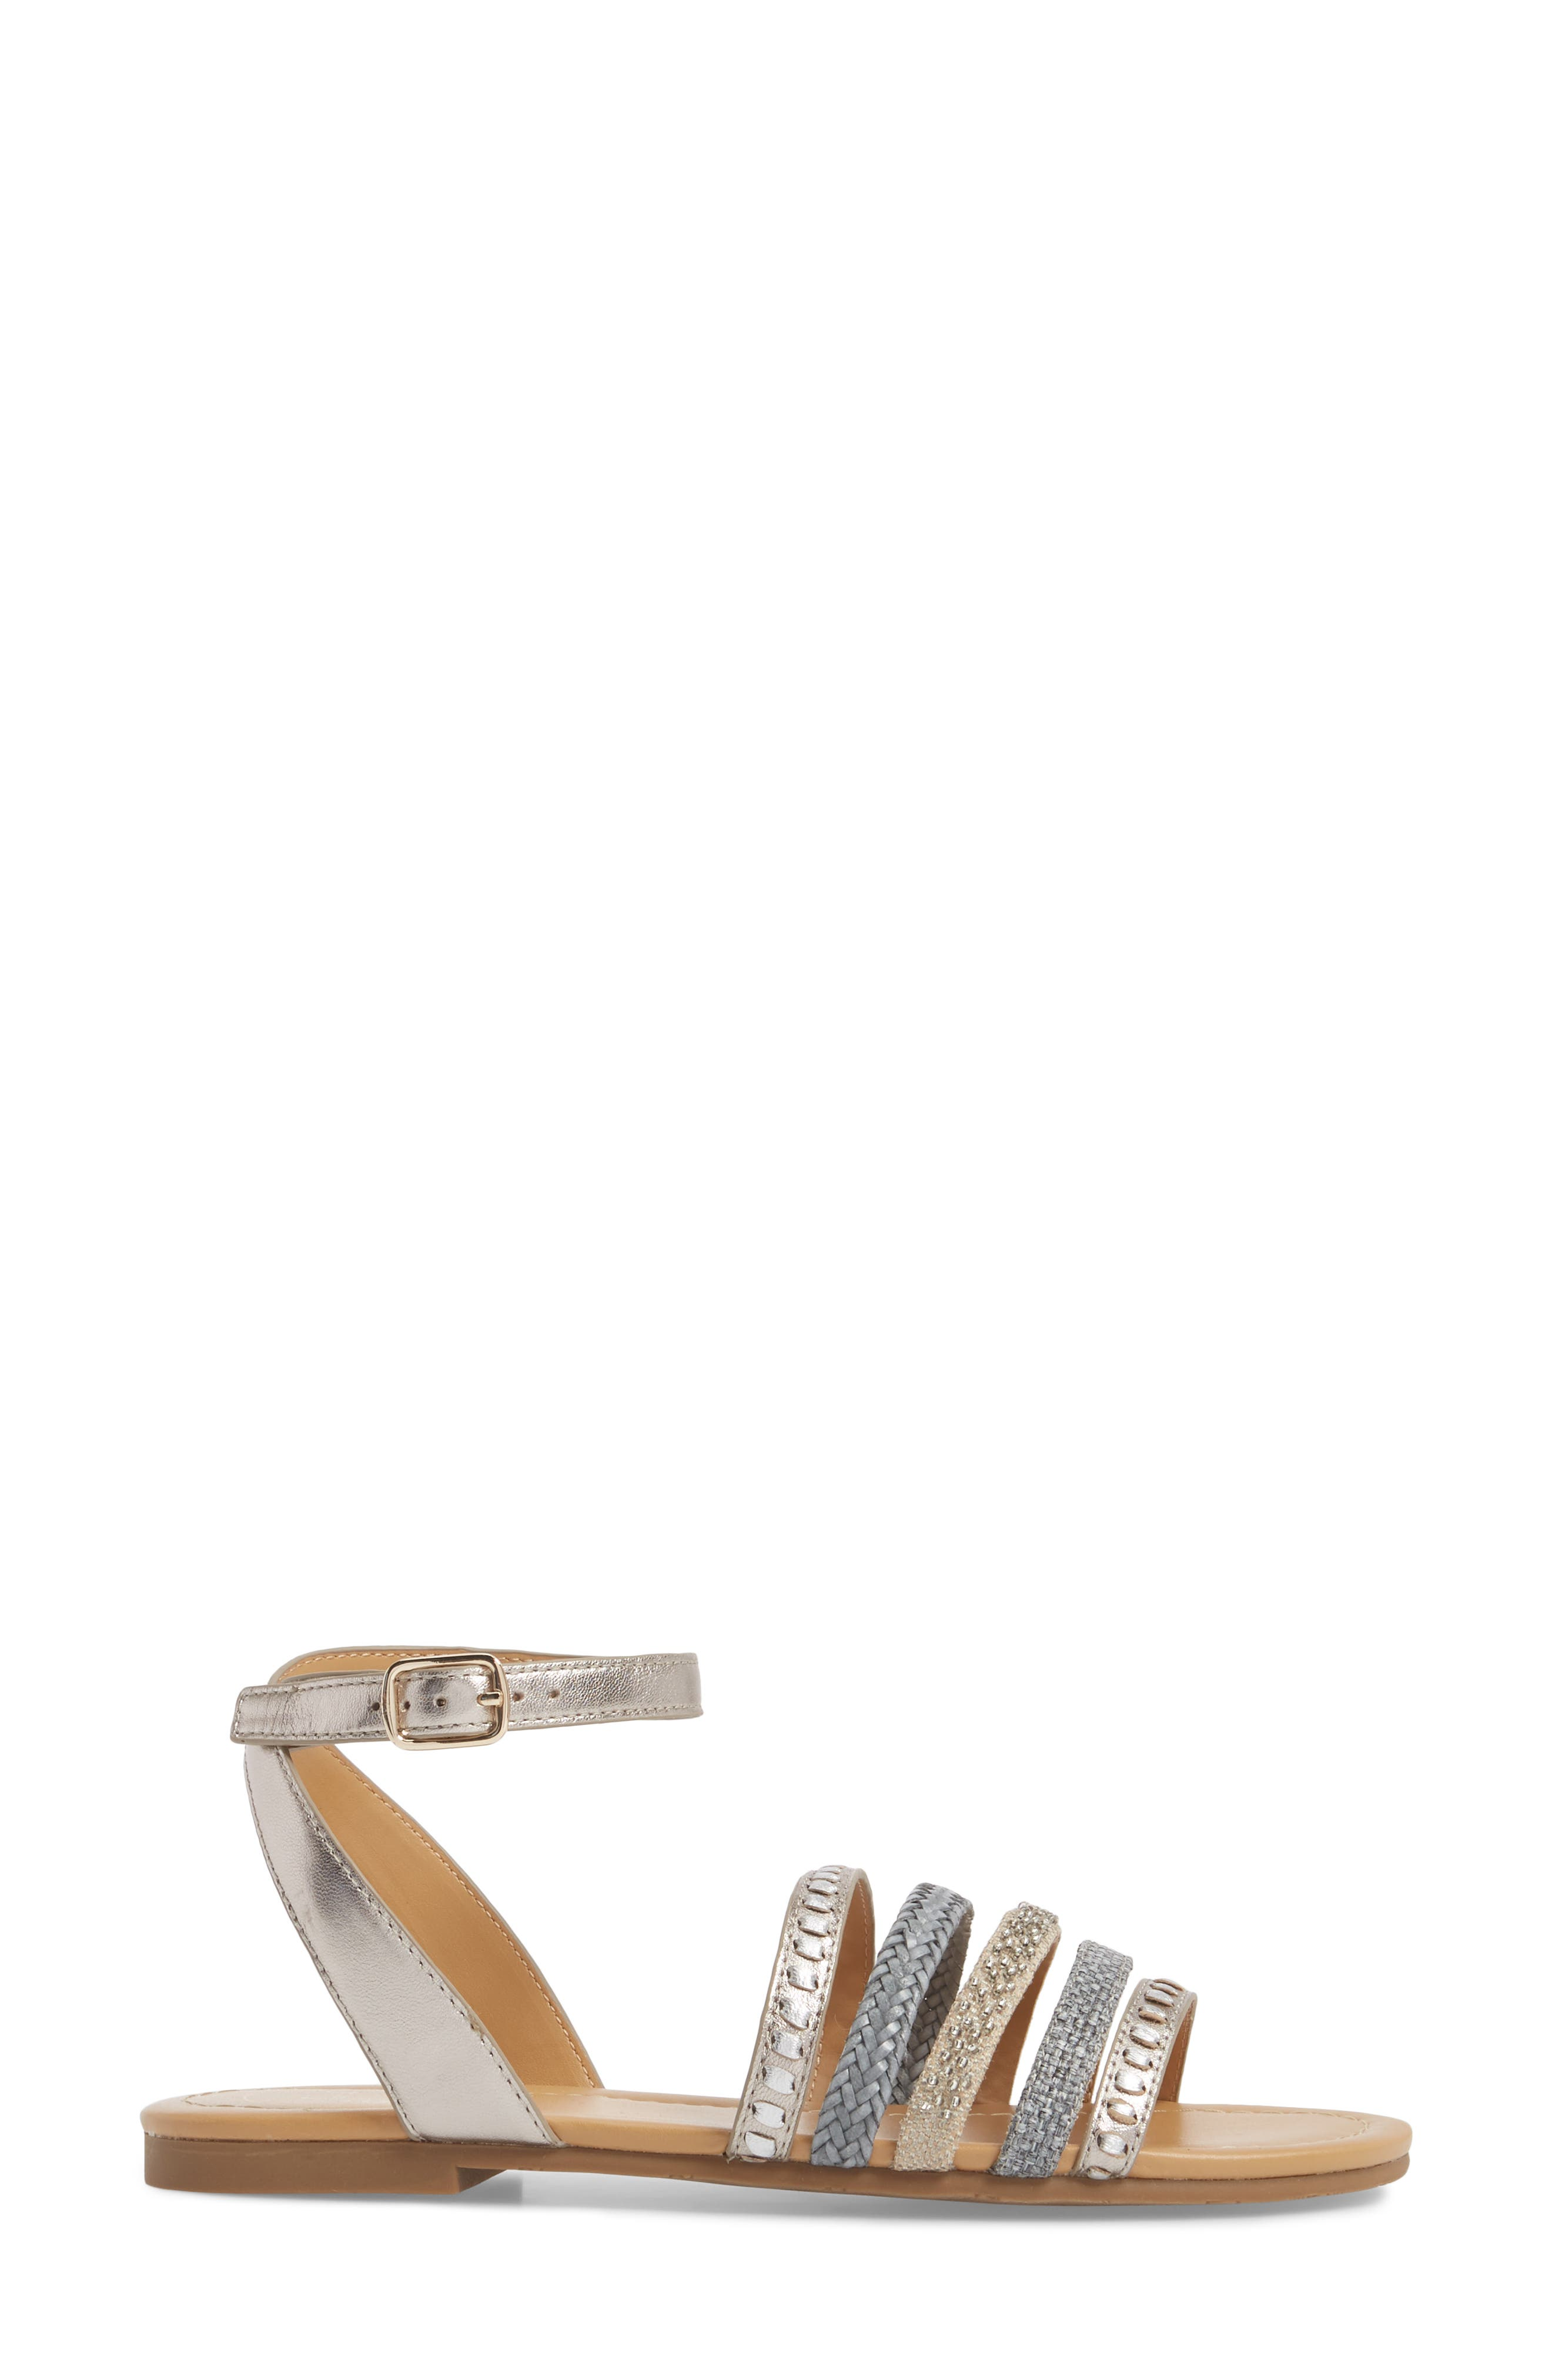 Hannah Braided Embellished Sandal,                             Alternate thumbnail 3, color,                             040